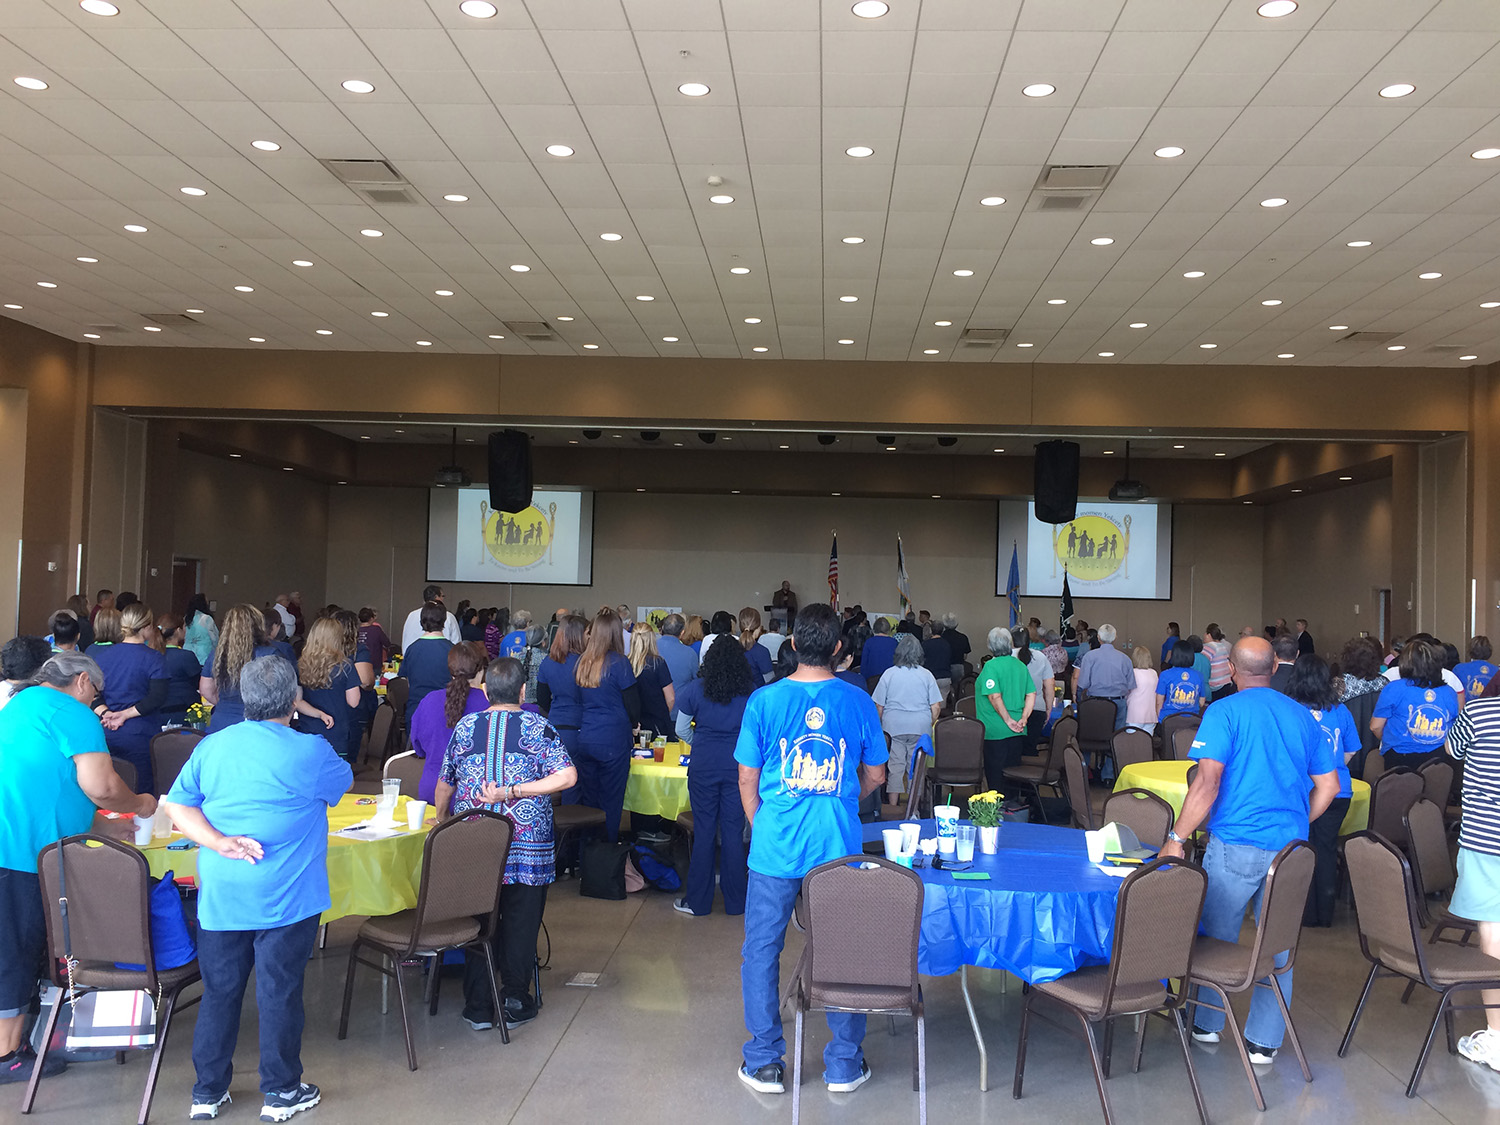 Muscogee (Creek) Nation Brings Awareness to Diabetes Prevention During Summit